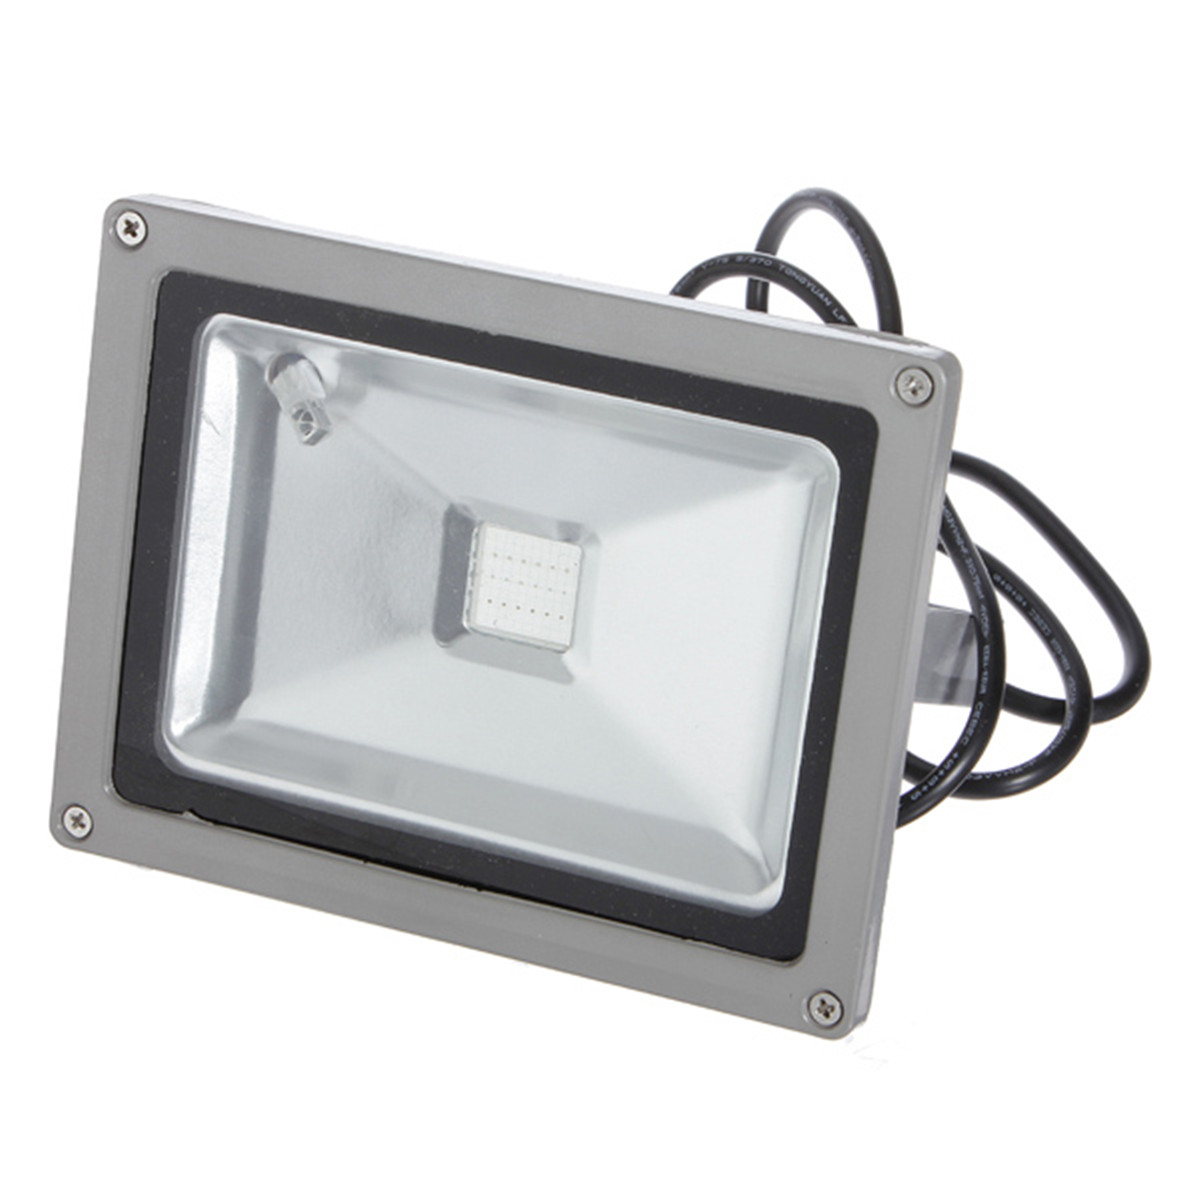 20w led lampe projecteur rgb exterieur lumiere ip65 for Lampe led exterieur